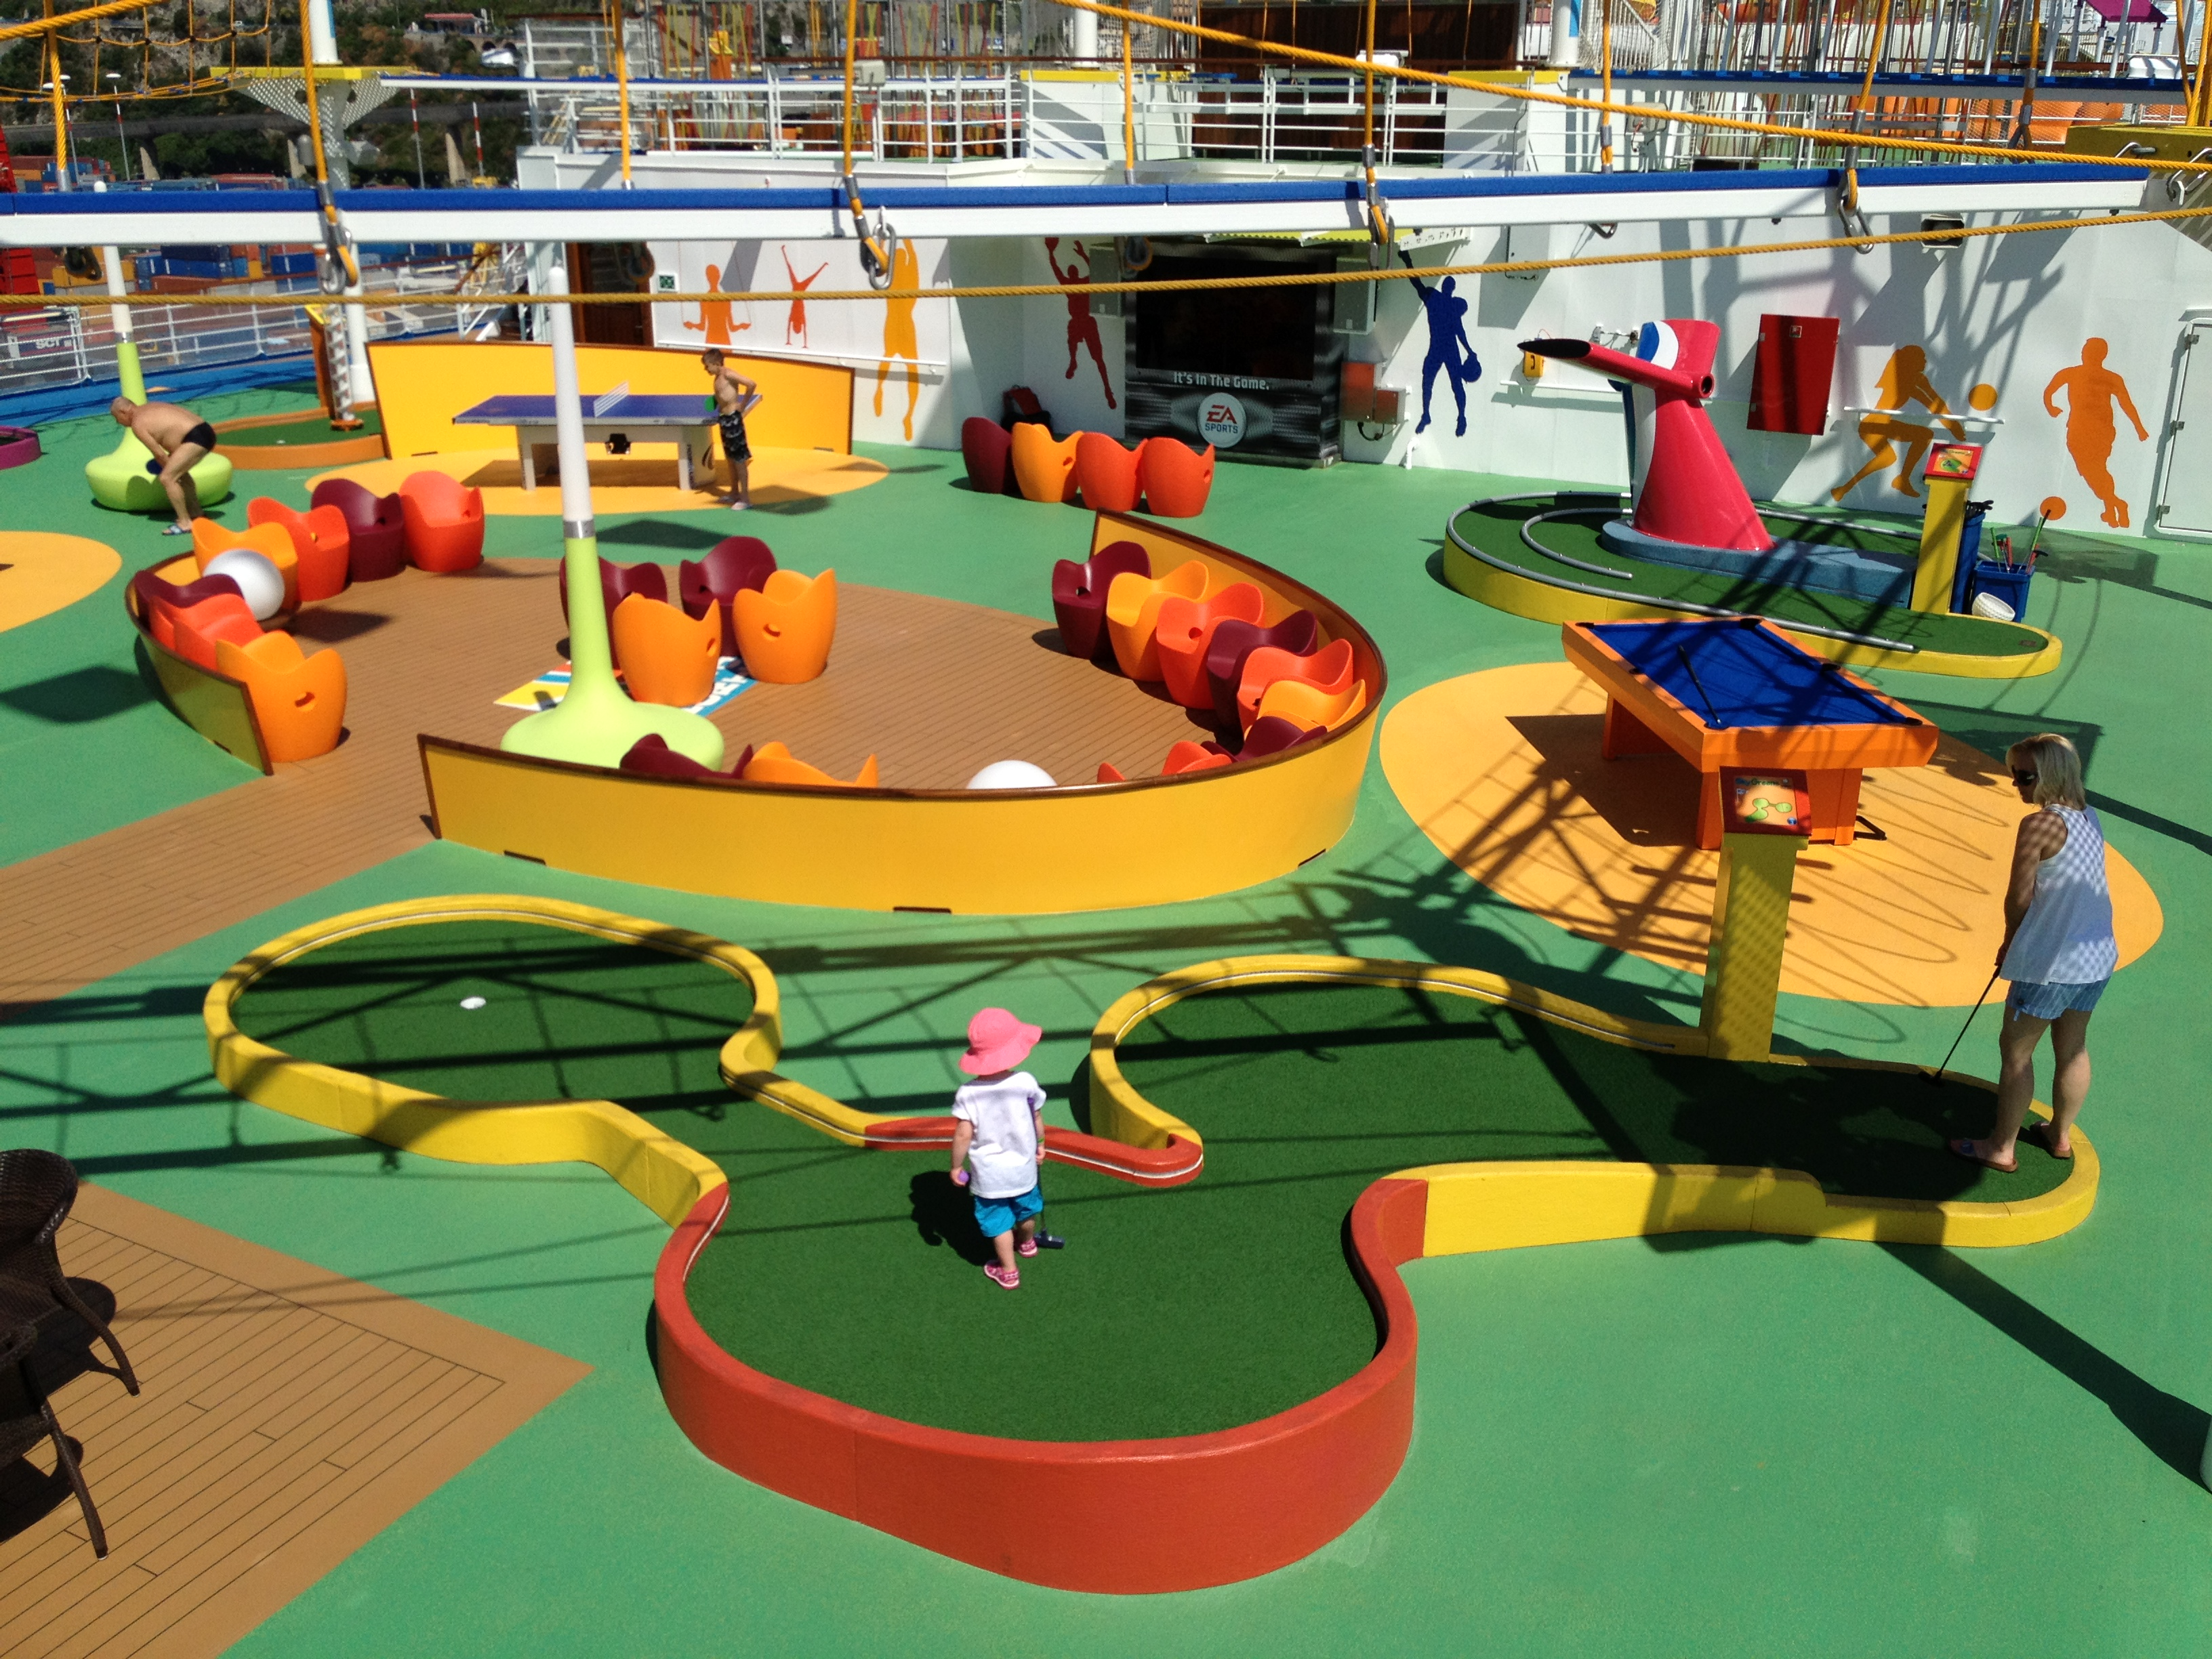 Carnival Breeze Mini Golf By Southwest Greens Artificial Grass Amp Turf Southwest Greens